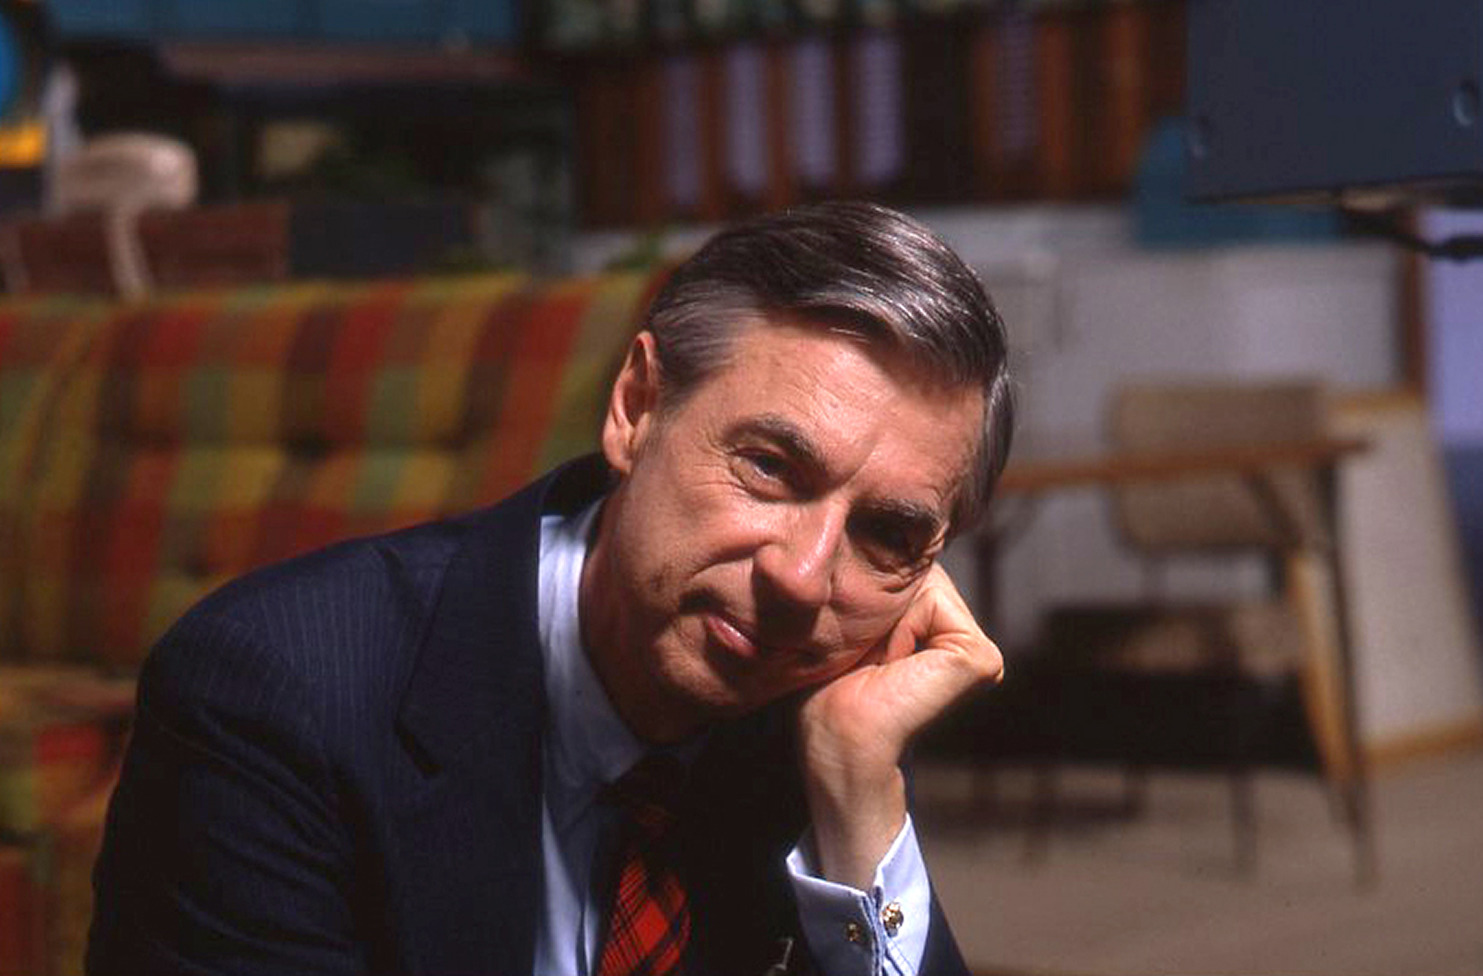 Exclusive: Won't You Be My Neighbor? Trailer about everyone's favorite neighbor Mr. Rogers in theatersJune 8, 2018